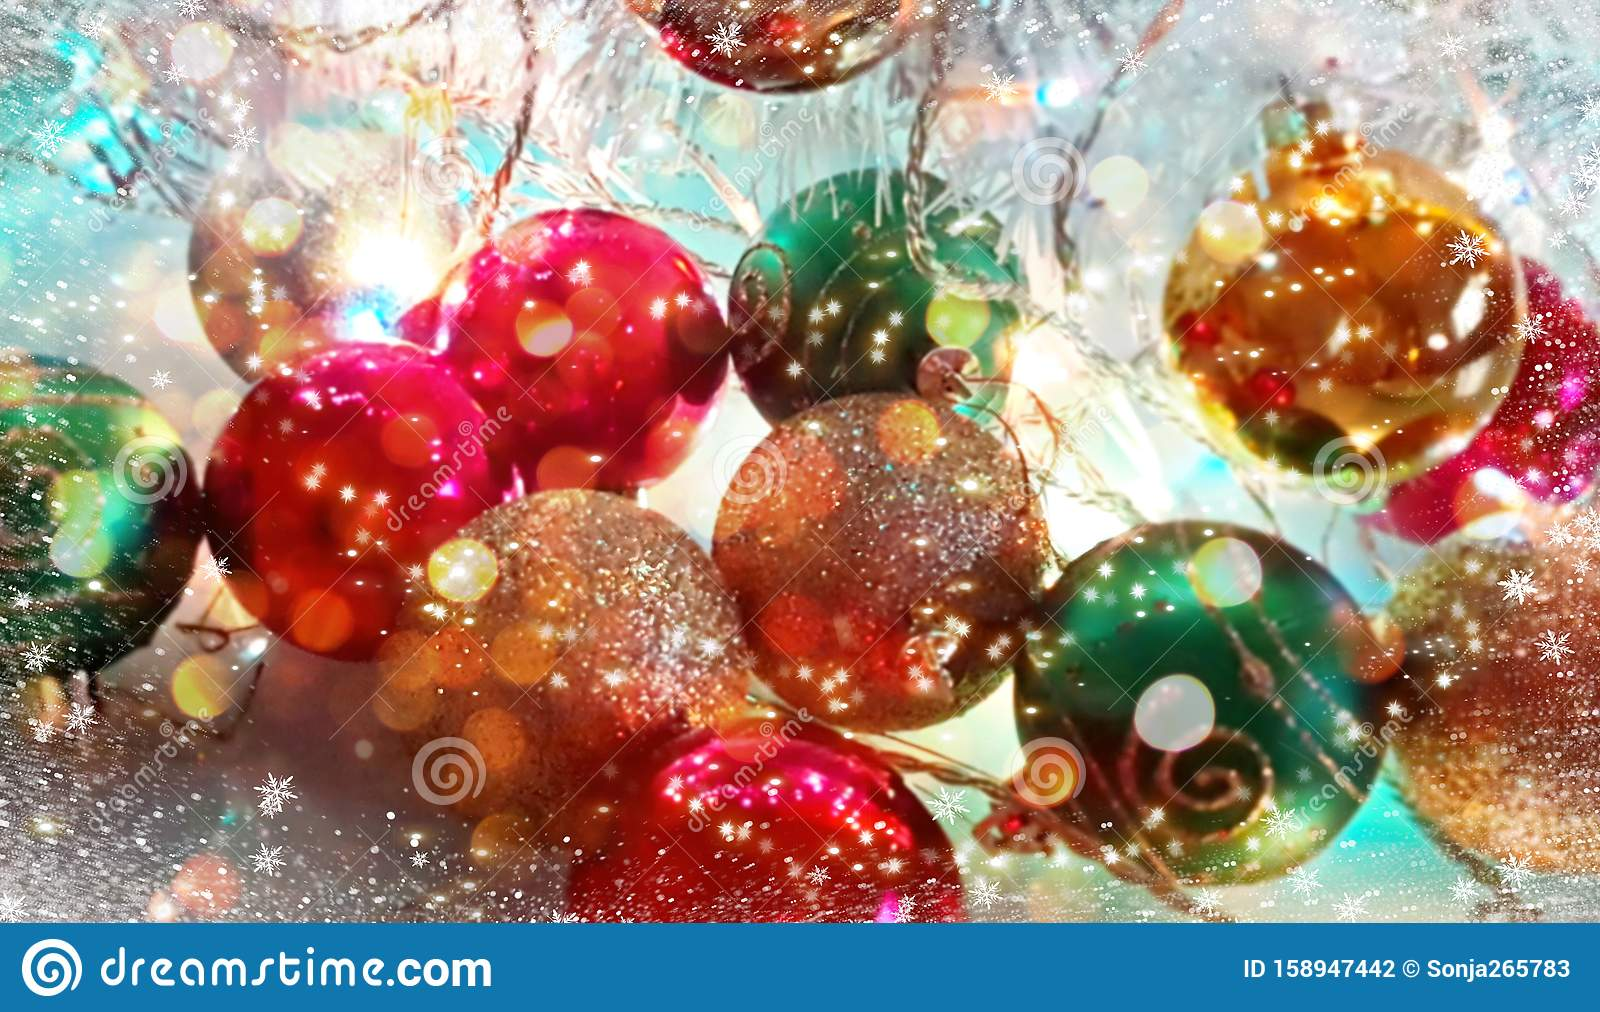 christmas wallpaper holiday white gold silver red green balls snowflakes light decoration new year blurry lights back modern 158947442